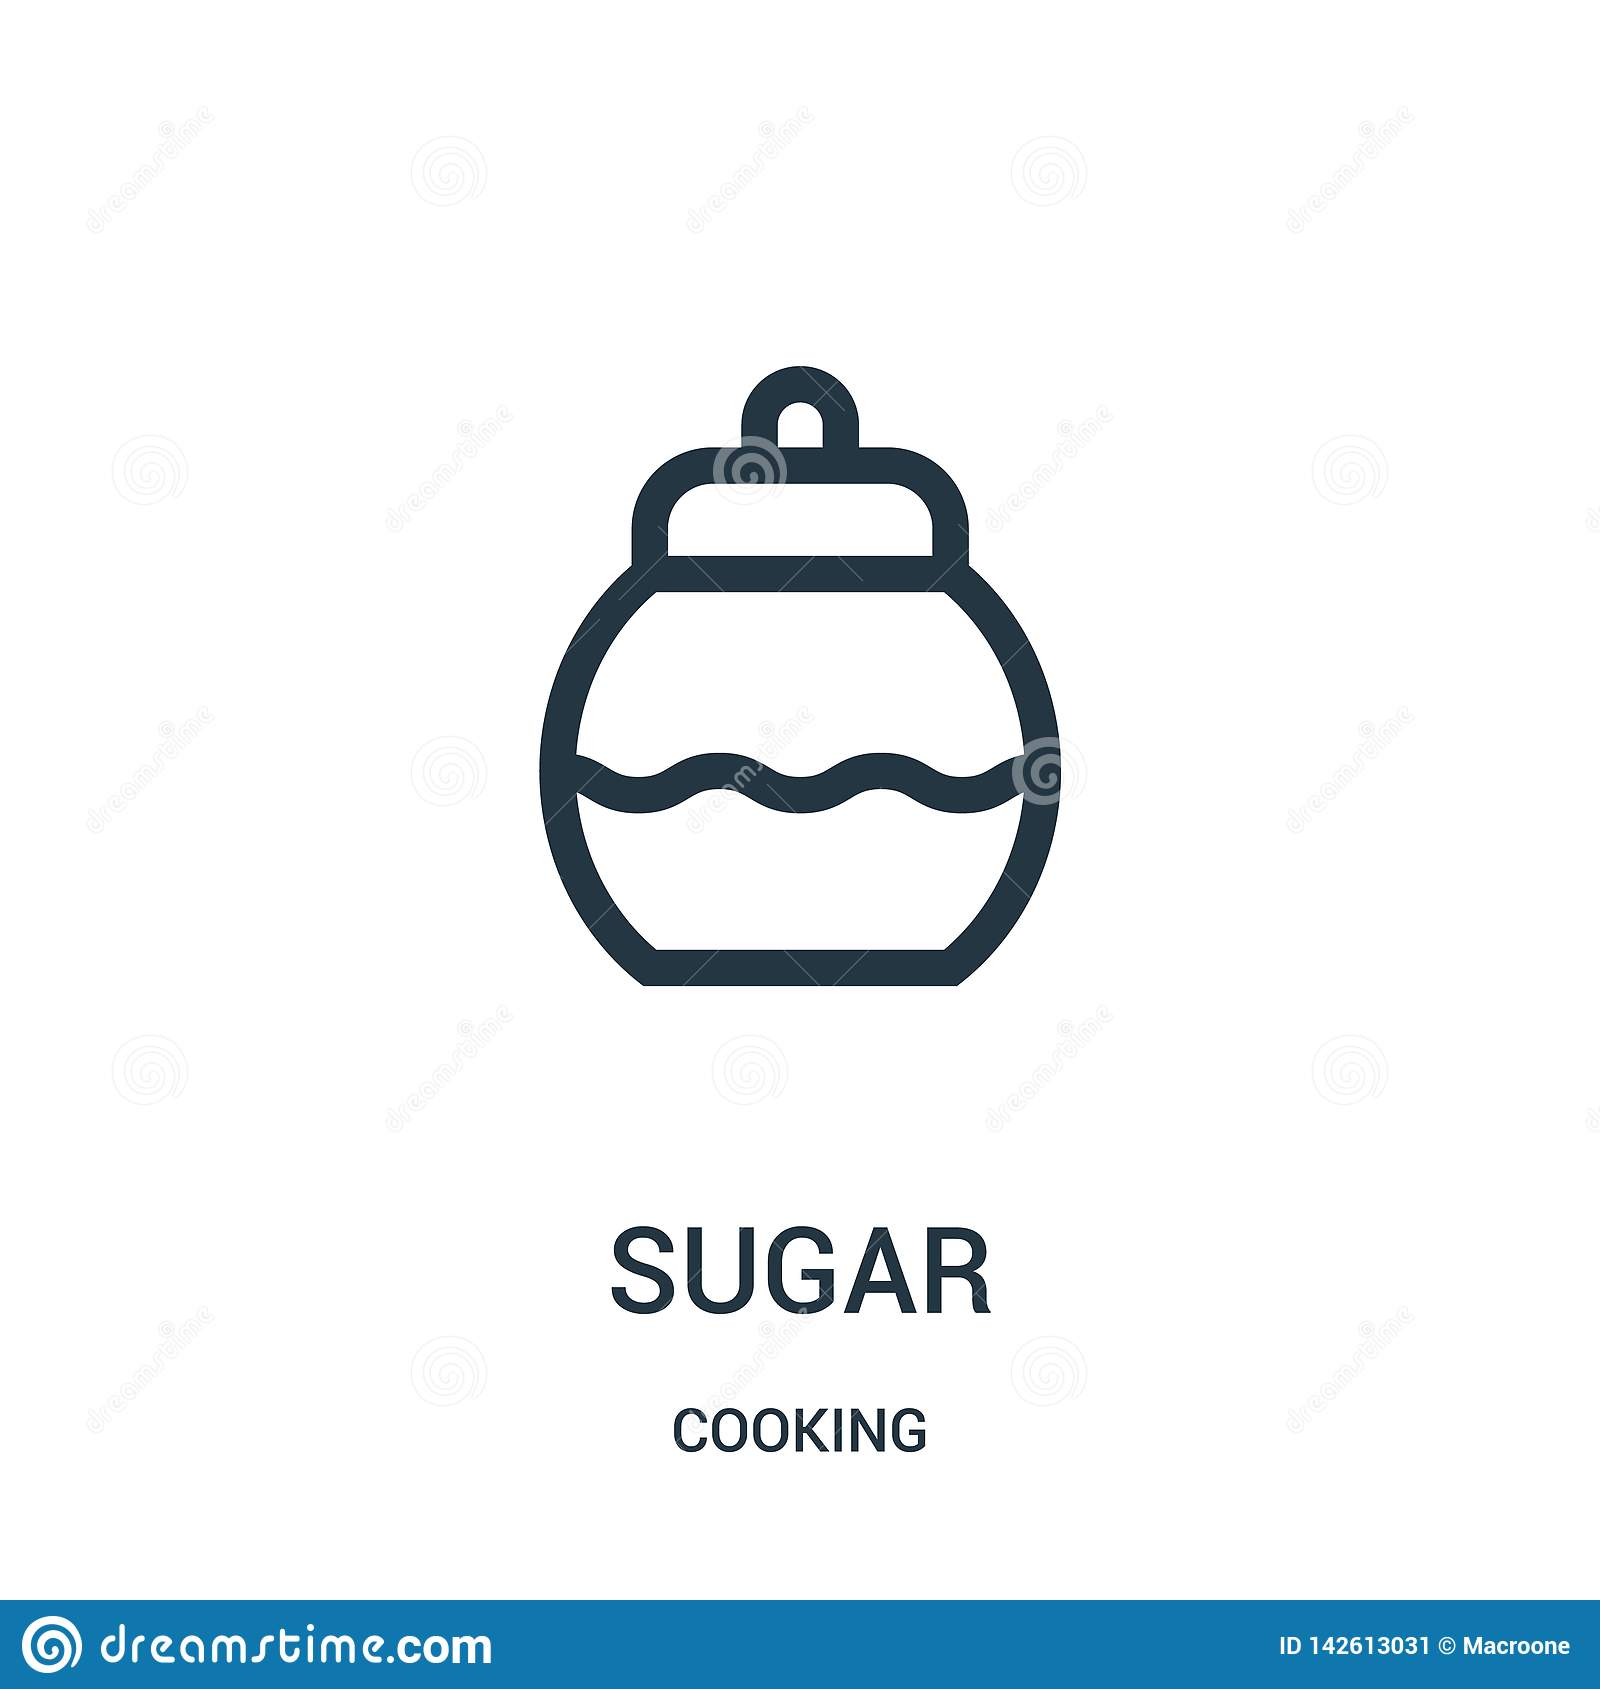 sugar icon vector from cooking collection. Thin line sugar outline icon vector illustration. Linear symbol